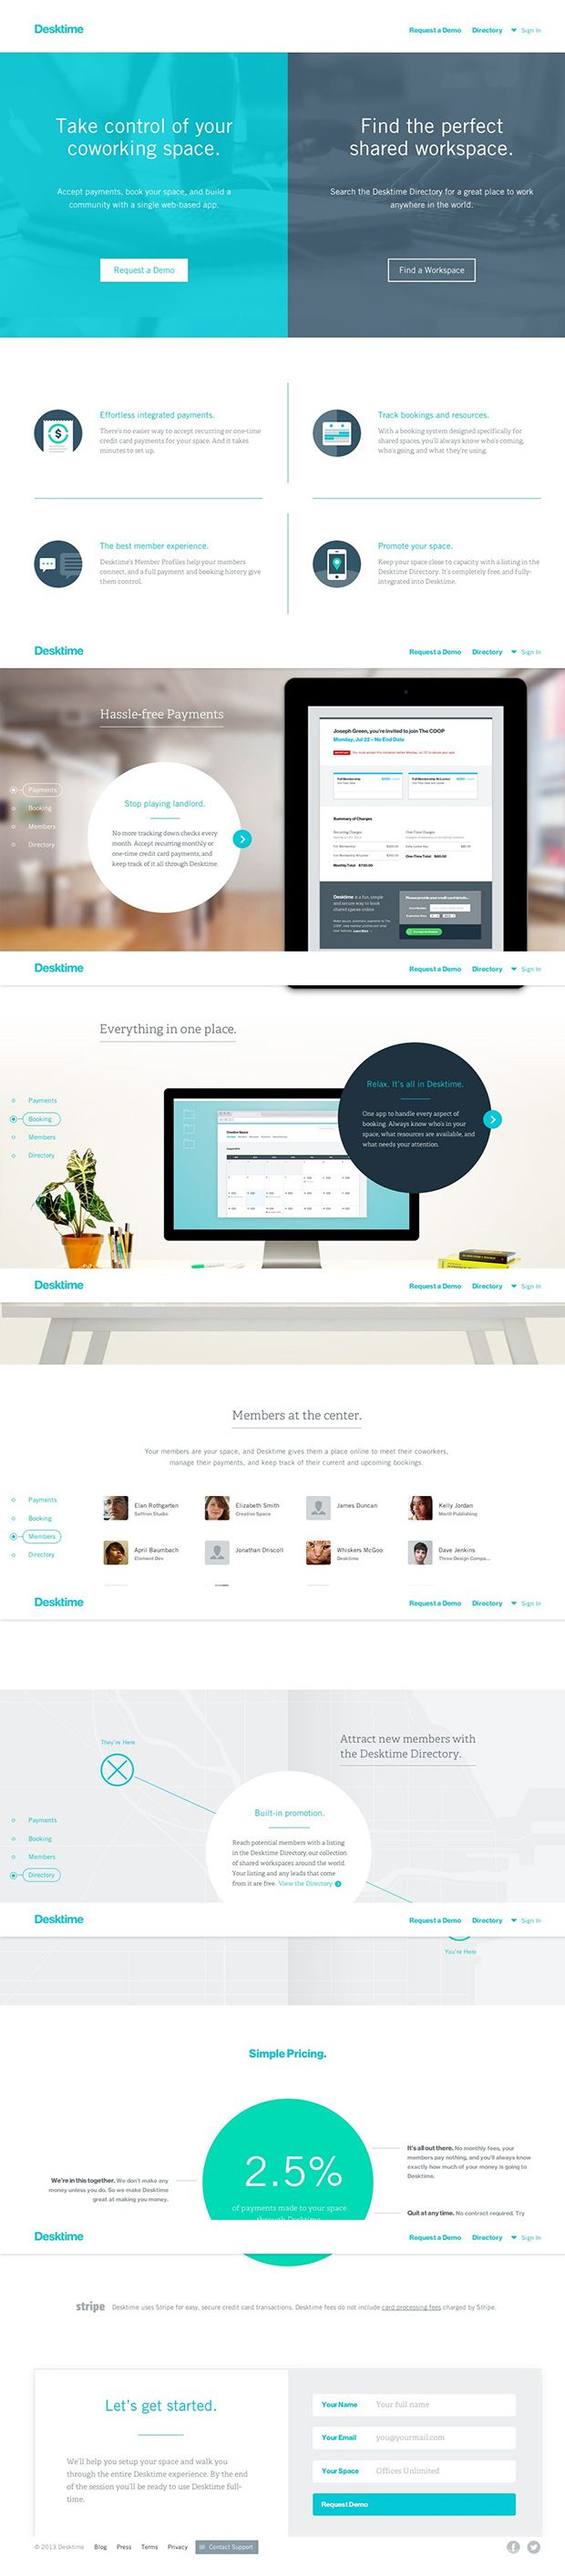 Desktime product app landing page pinterest app ui ux and